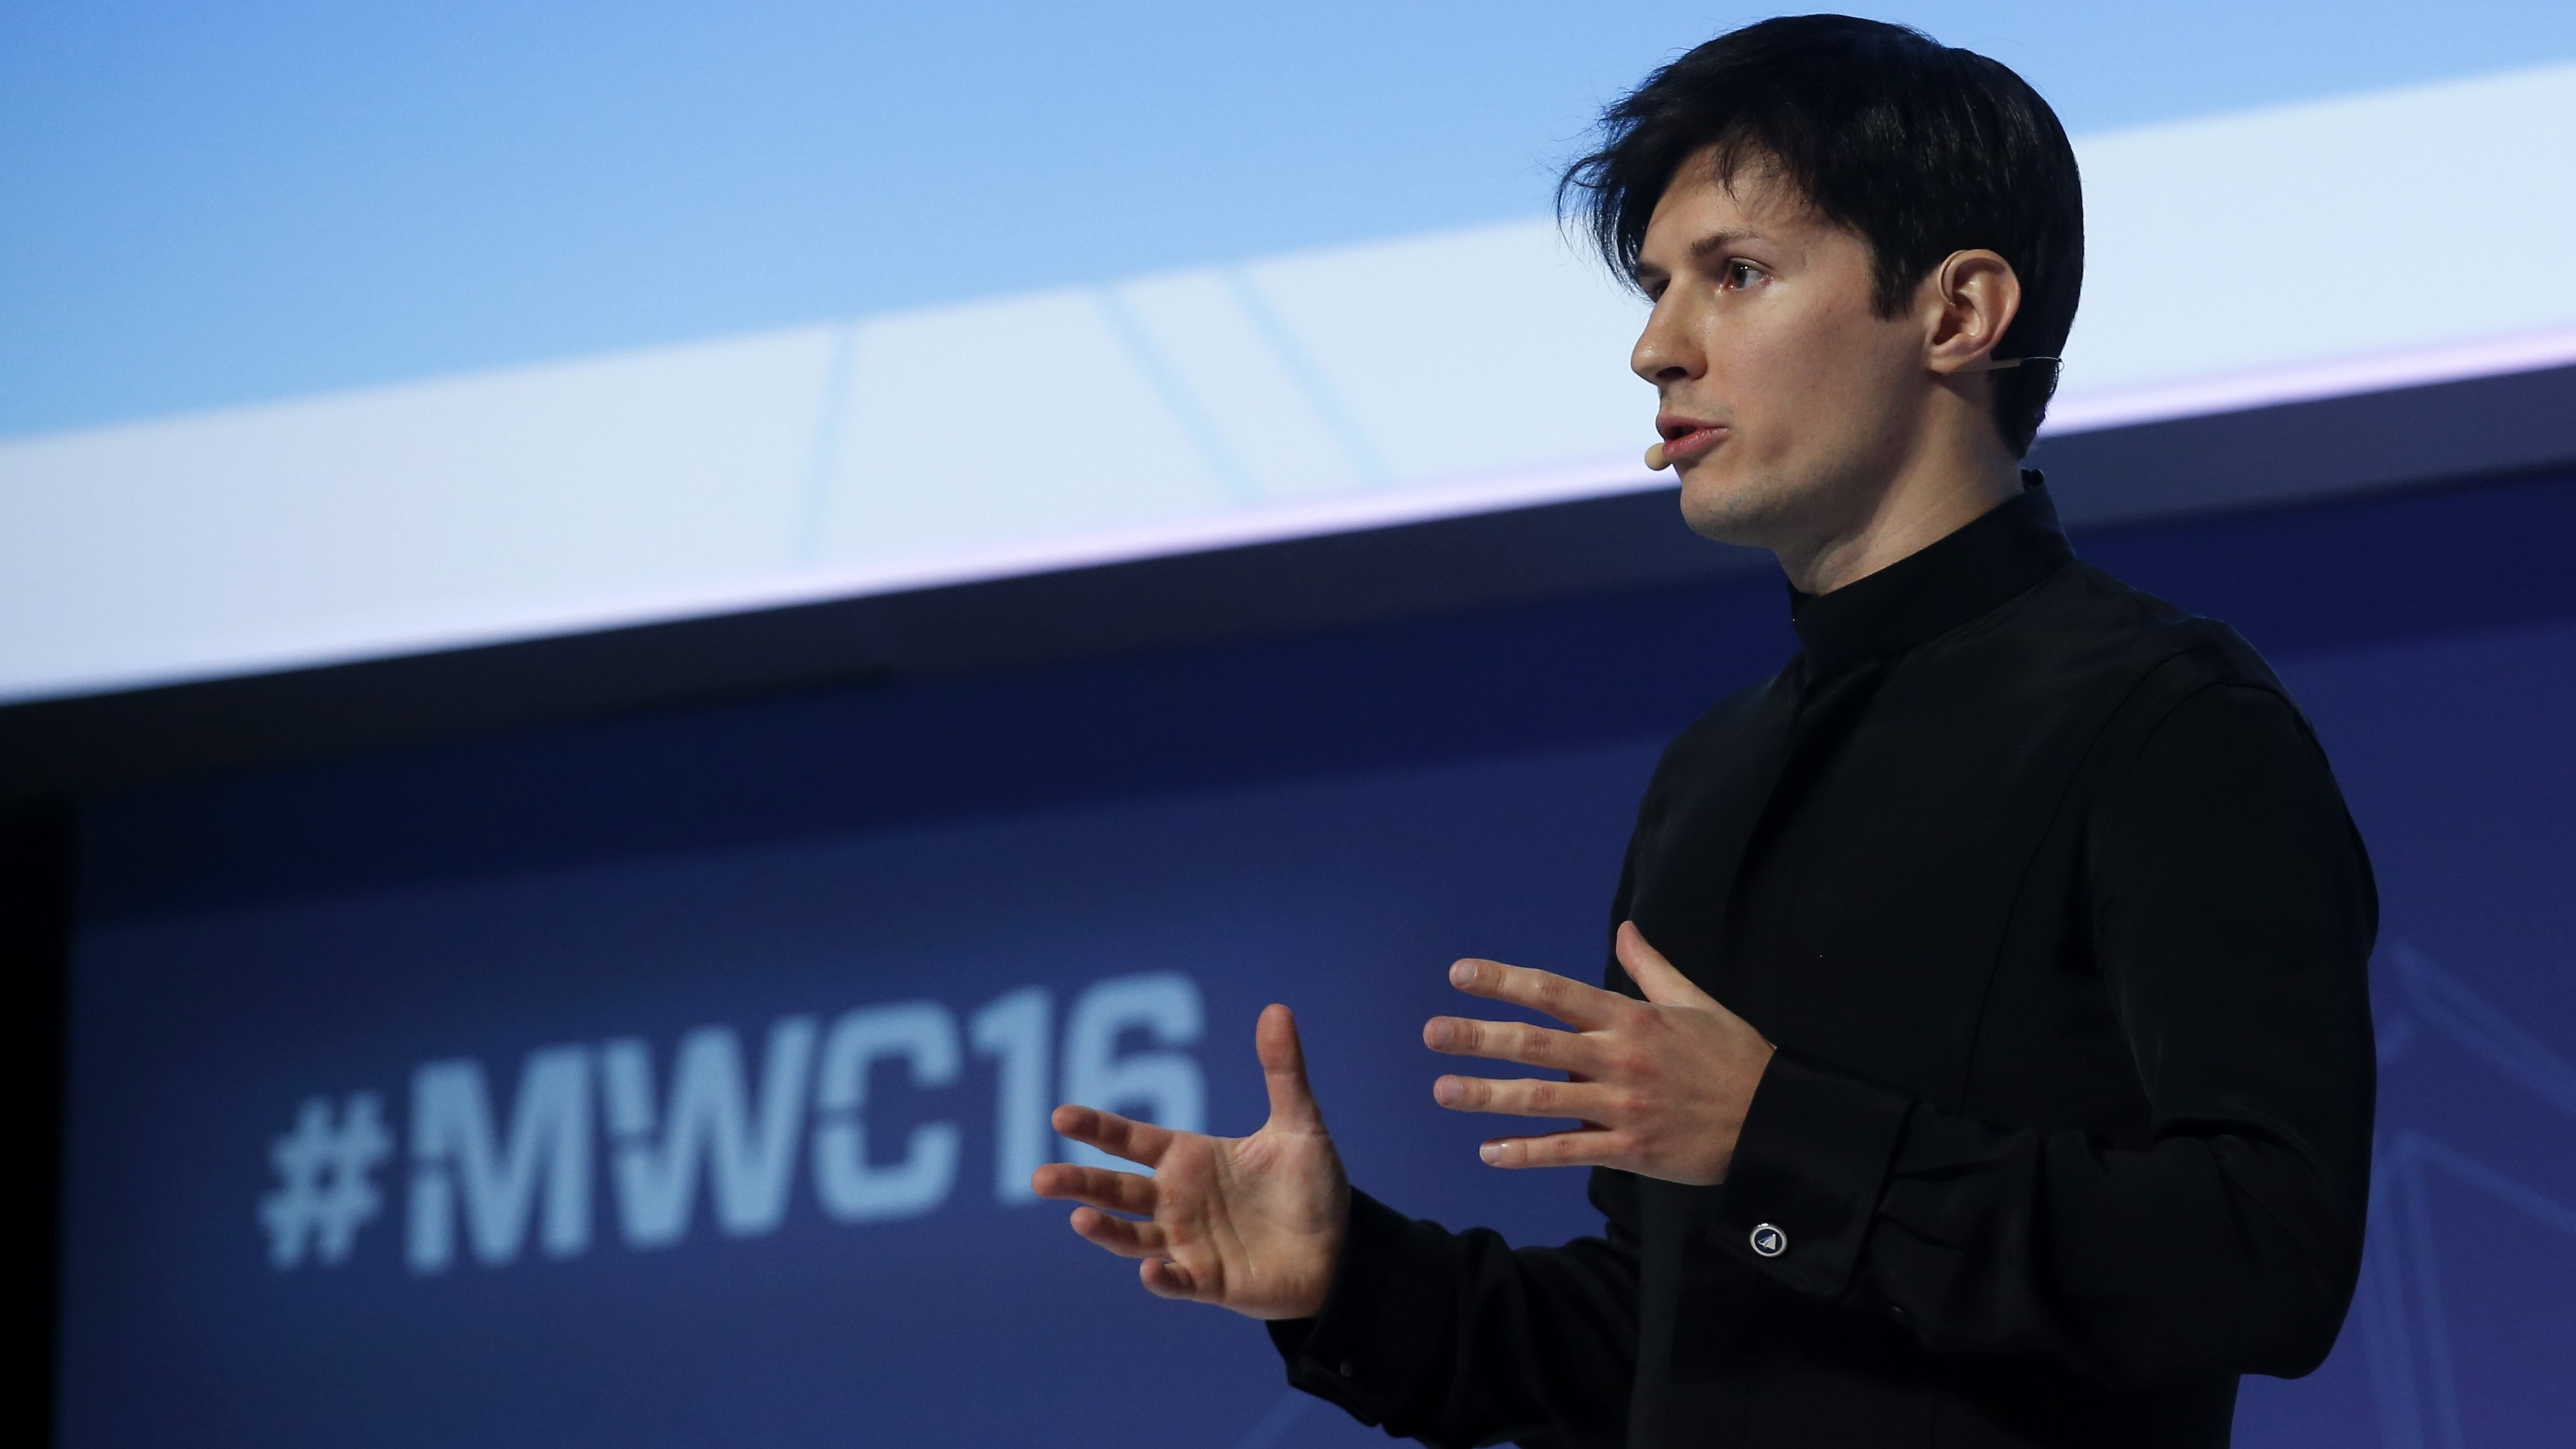 Founder and CEO of Telegram Pavel Durov delivers a keynote speech during the Mobile World Congress in Barcelona, Spain February 23, 2016.